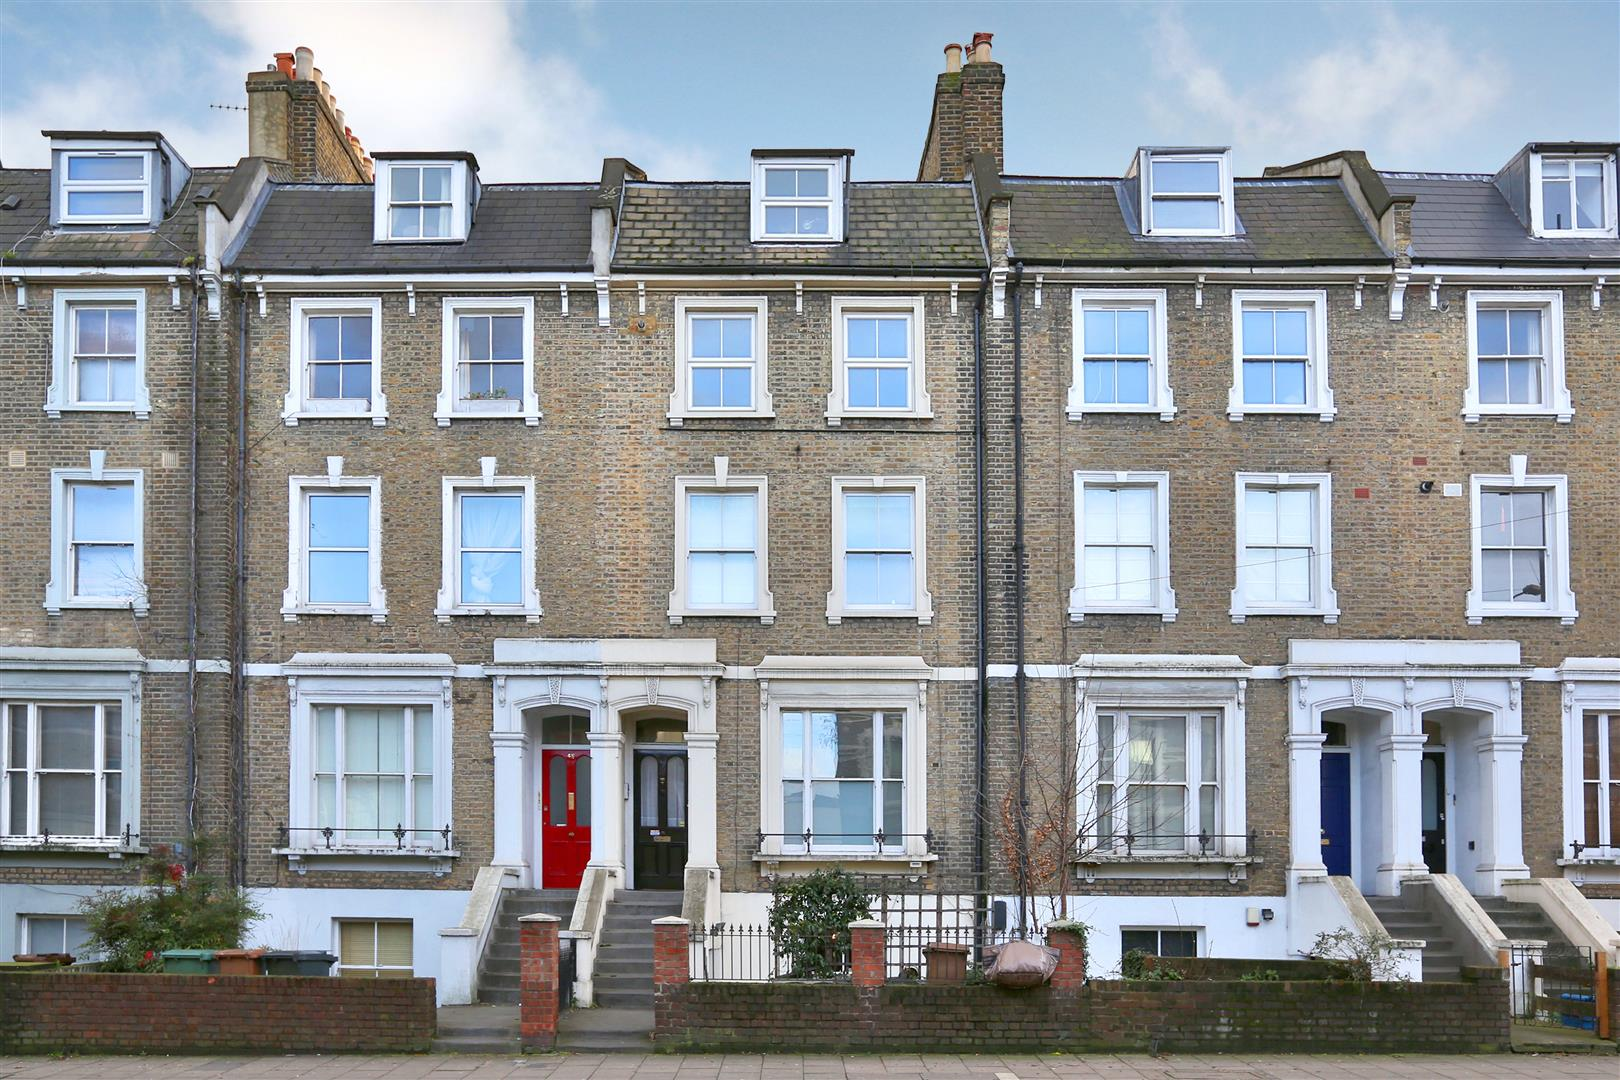 3 Bedrooms House for sale in Manse Road, London